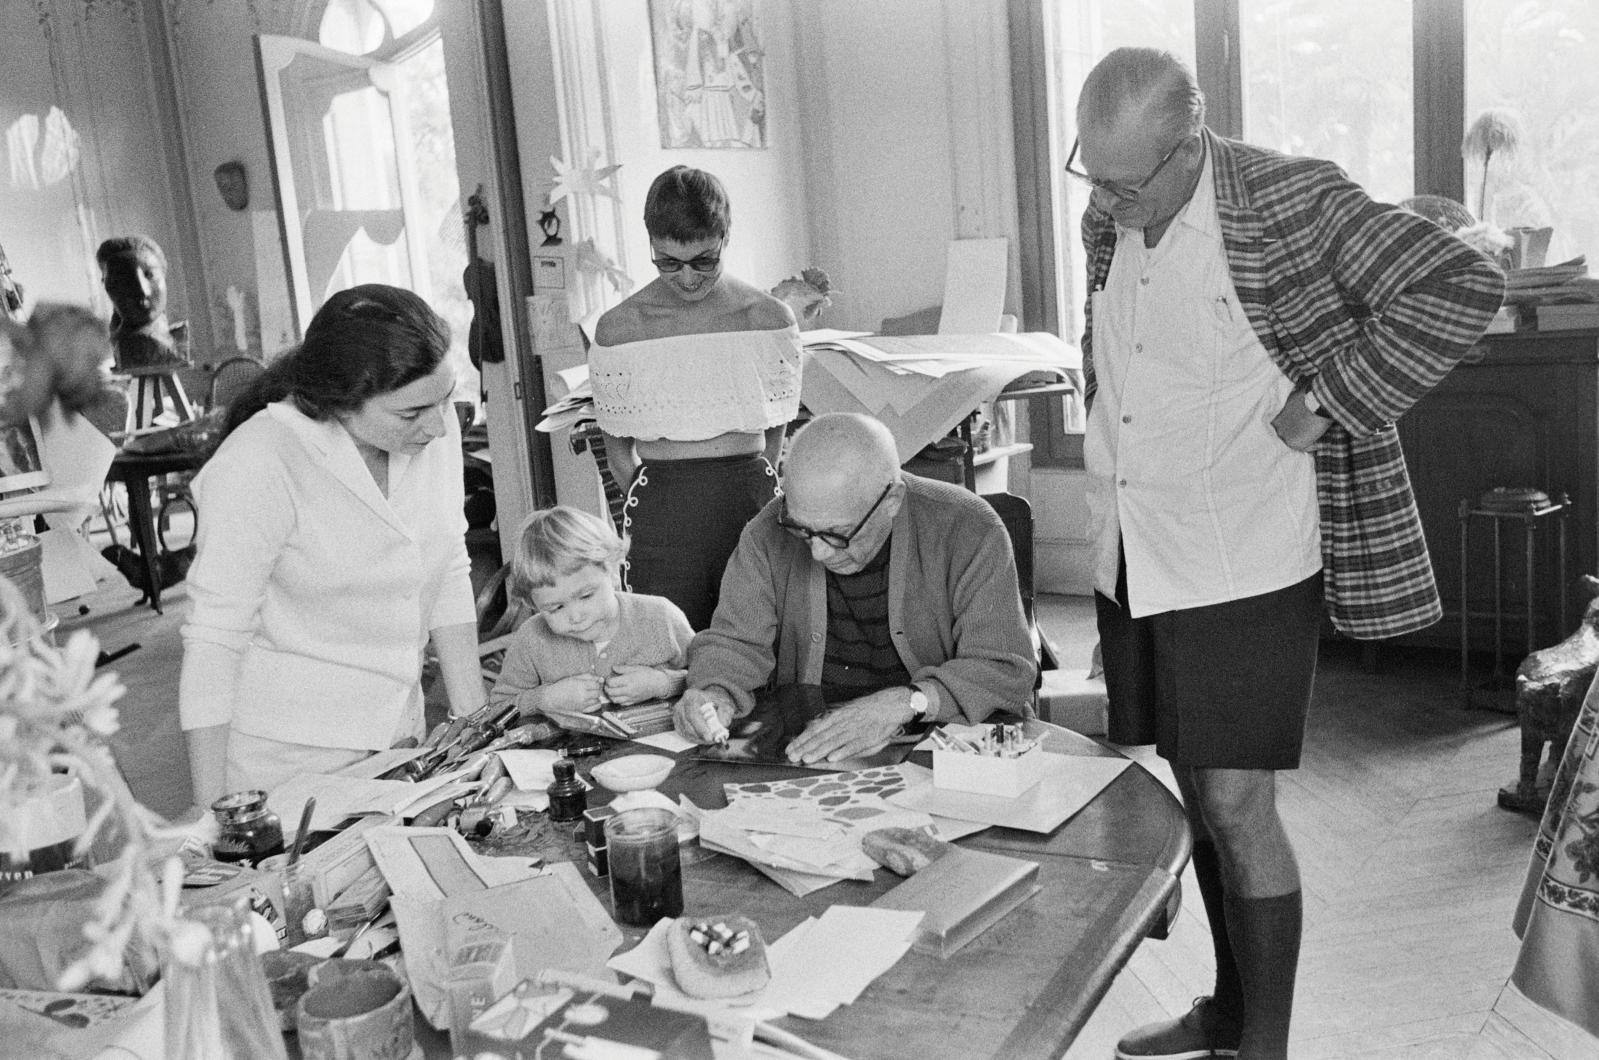 Jacqueline Roque, Marie and Ulla Ahrenberg, Picasso and Theodor Arhenberg at La Californie, Cannes, 1959.ARCHIVES AHRENBERG